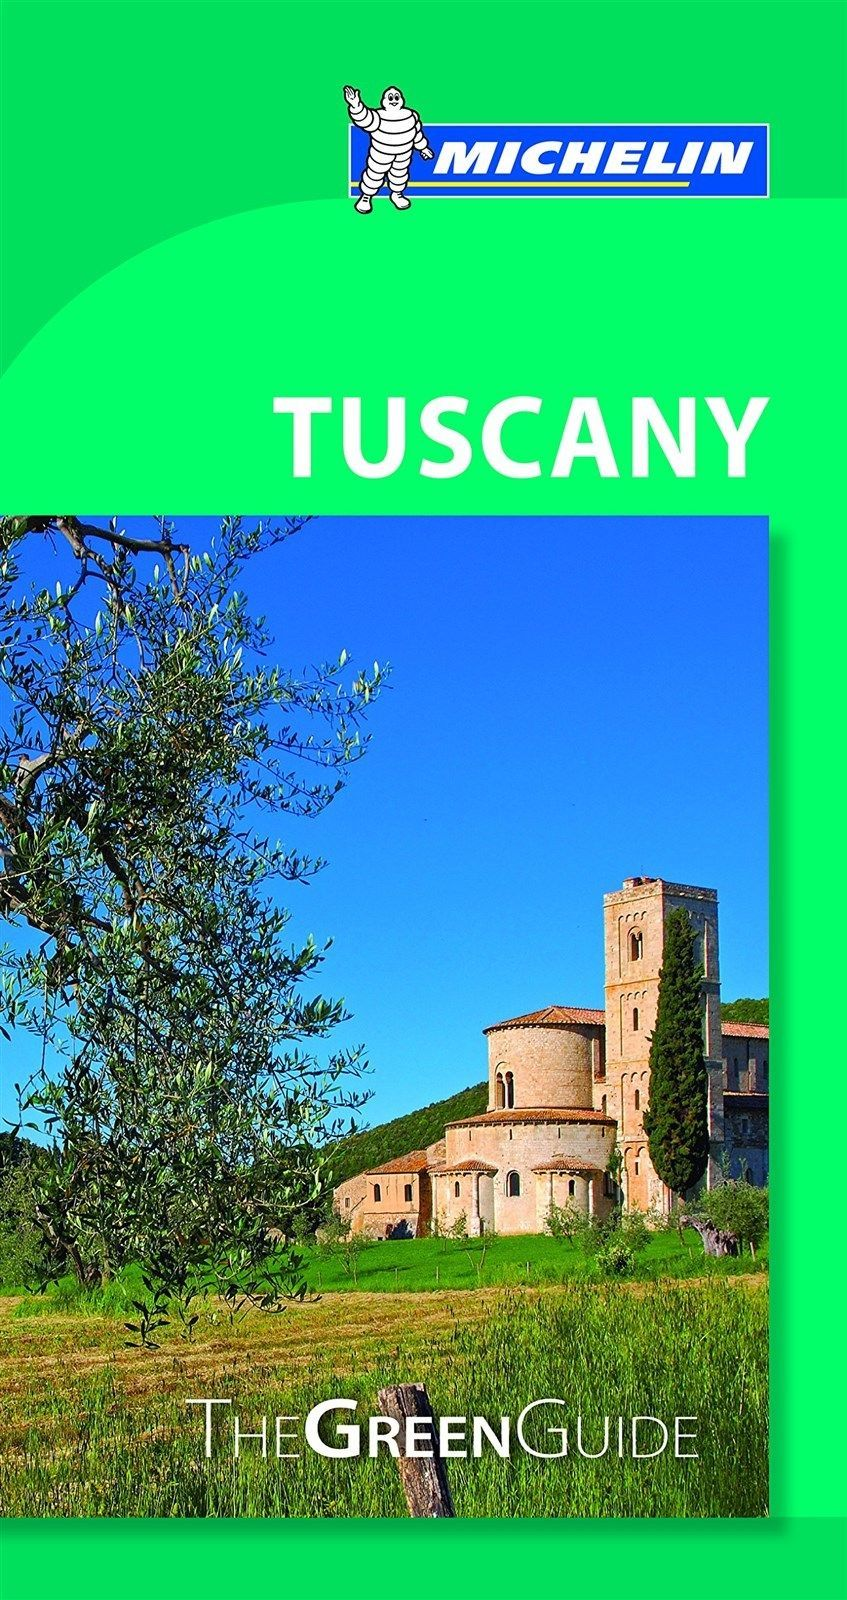 Green Guide Tuscany image